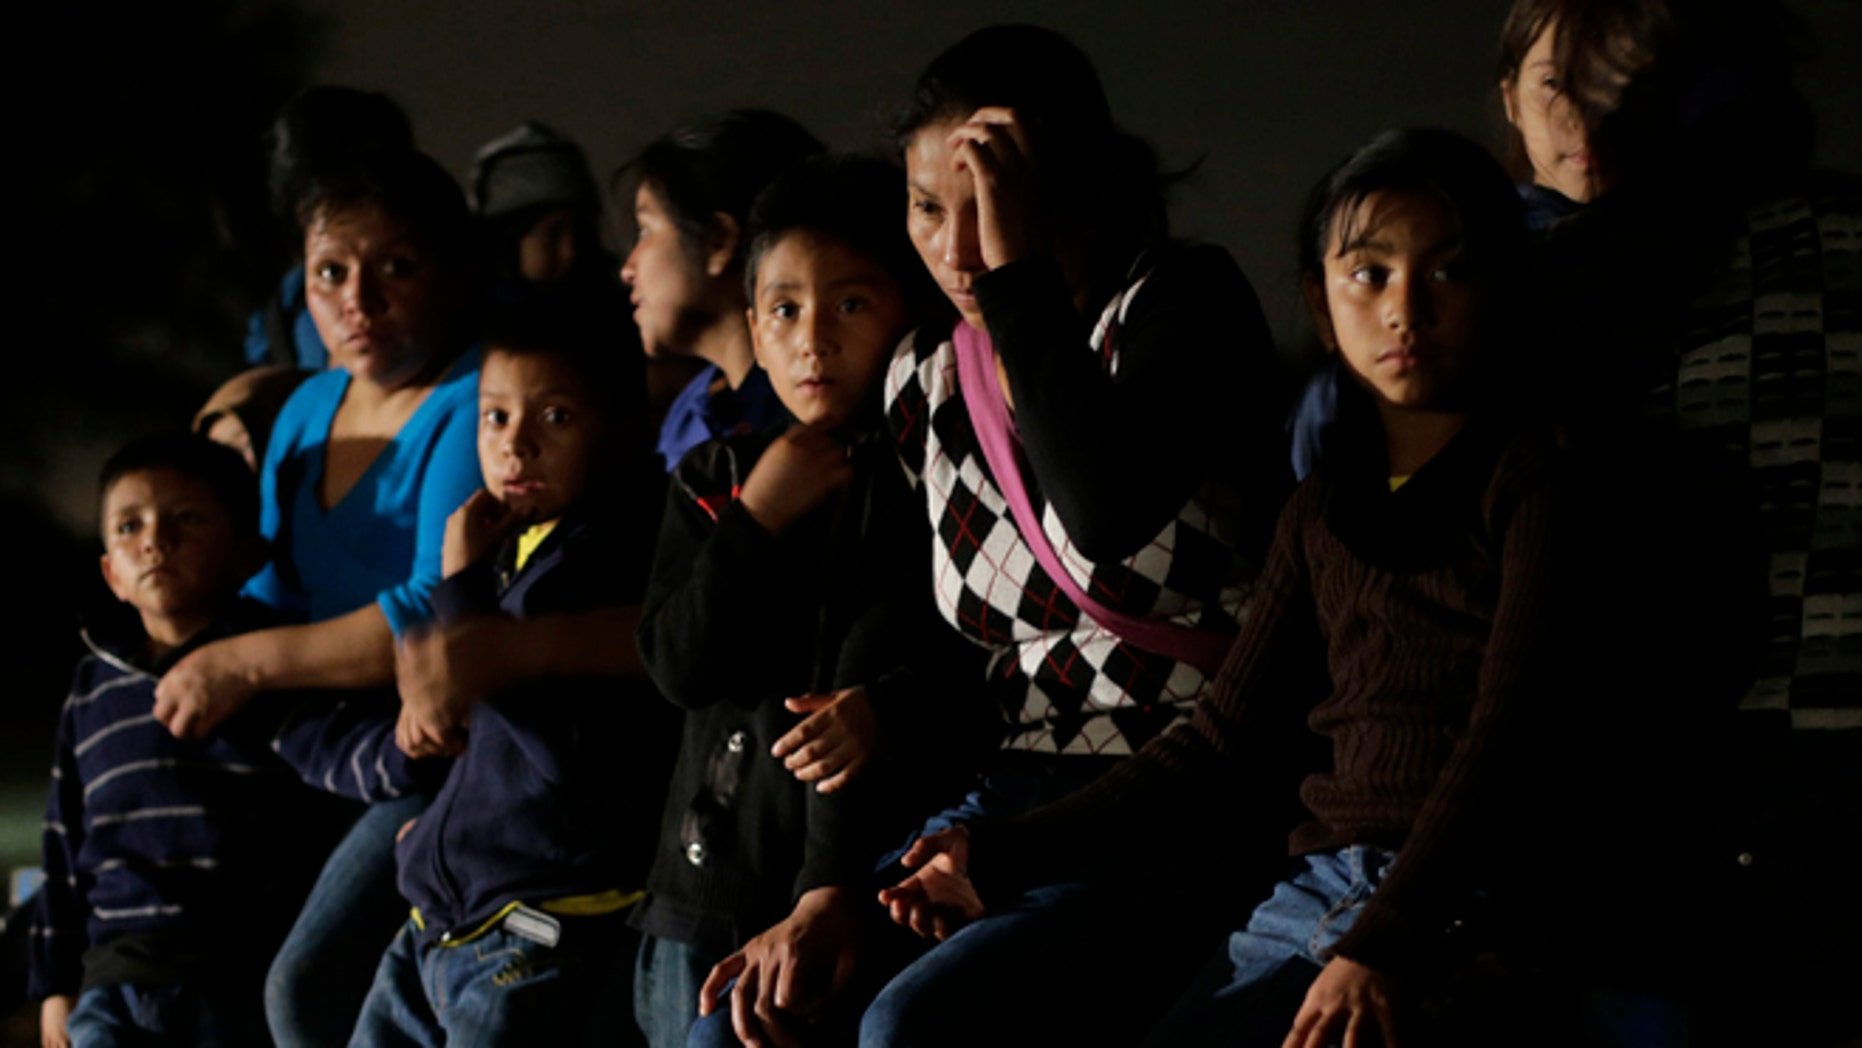 June 25, 2014: A group of immigrants from Honduras and El Salvador who crossed the U.S.-Mexico border illegally are stopped in Granjeno, Texas. Jim Gilchrist, founder and president of the Minuteman Project, said the current immigration flood in the state highlighted the need for a return. (AP/Eric Gay, File)